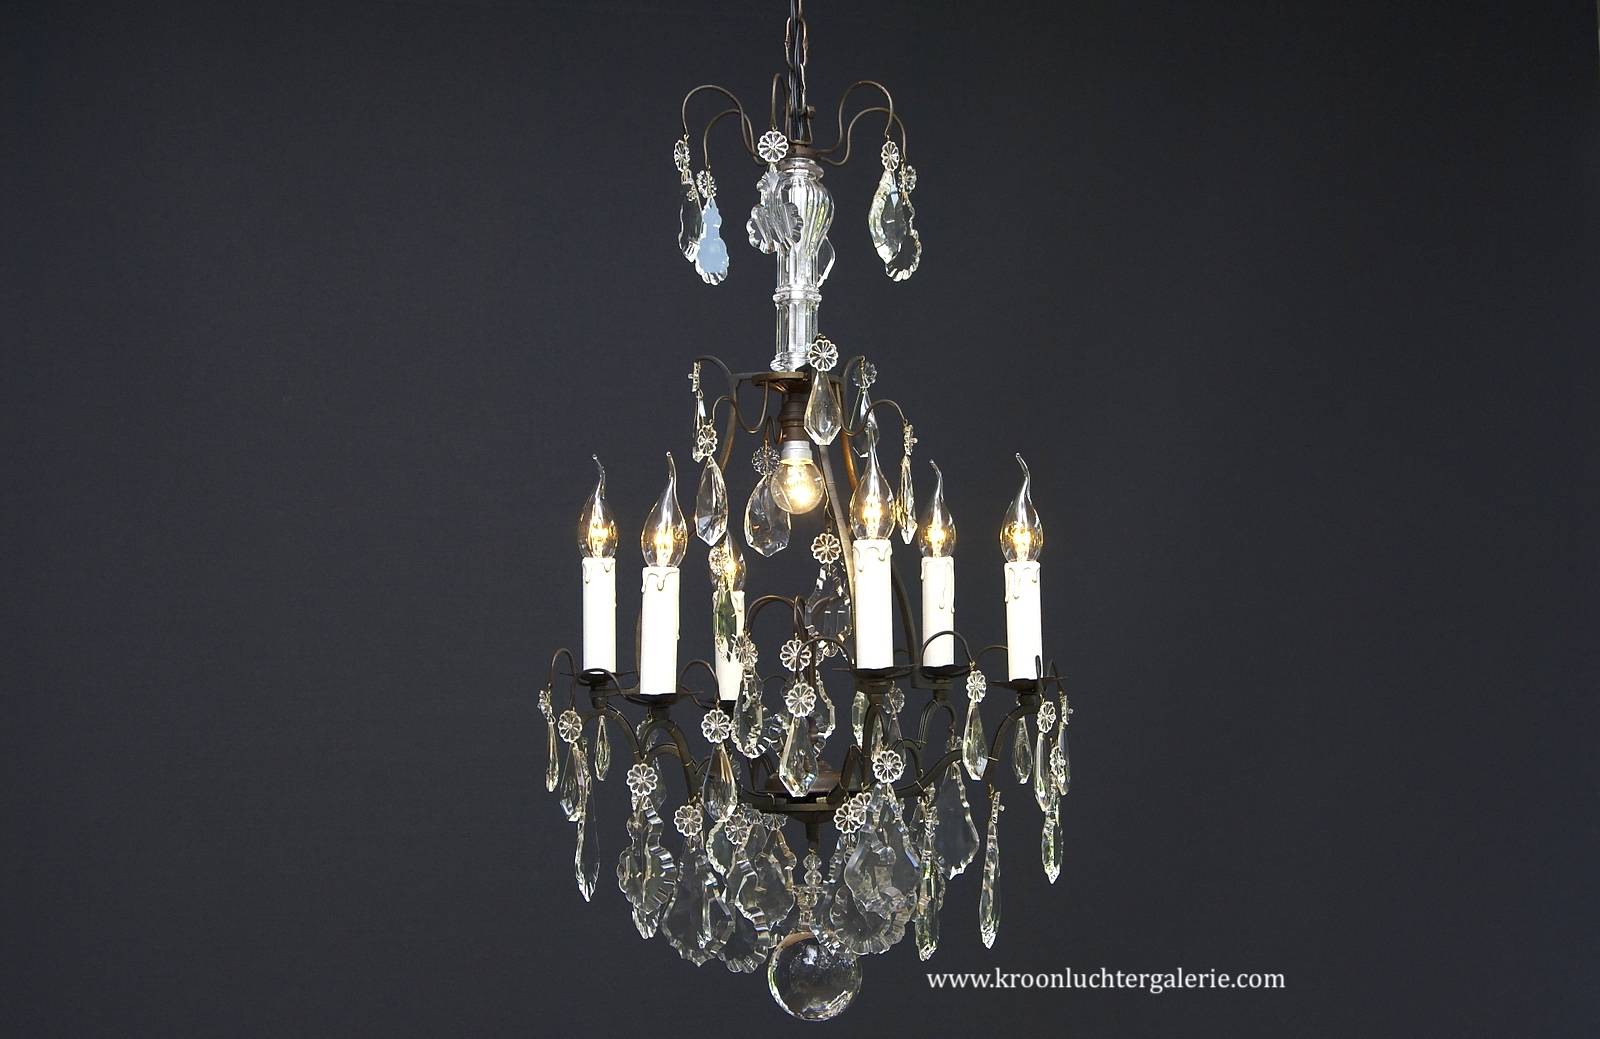 Early 20th century French chandelier with 7 light